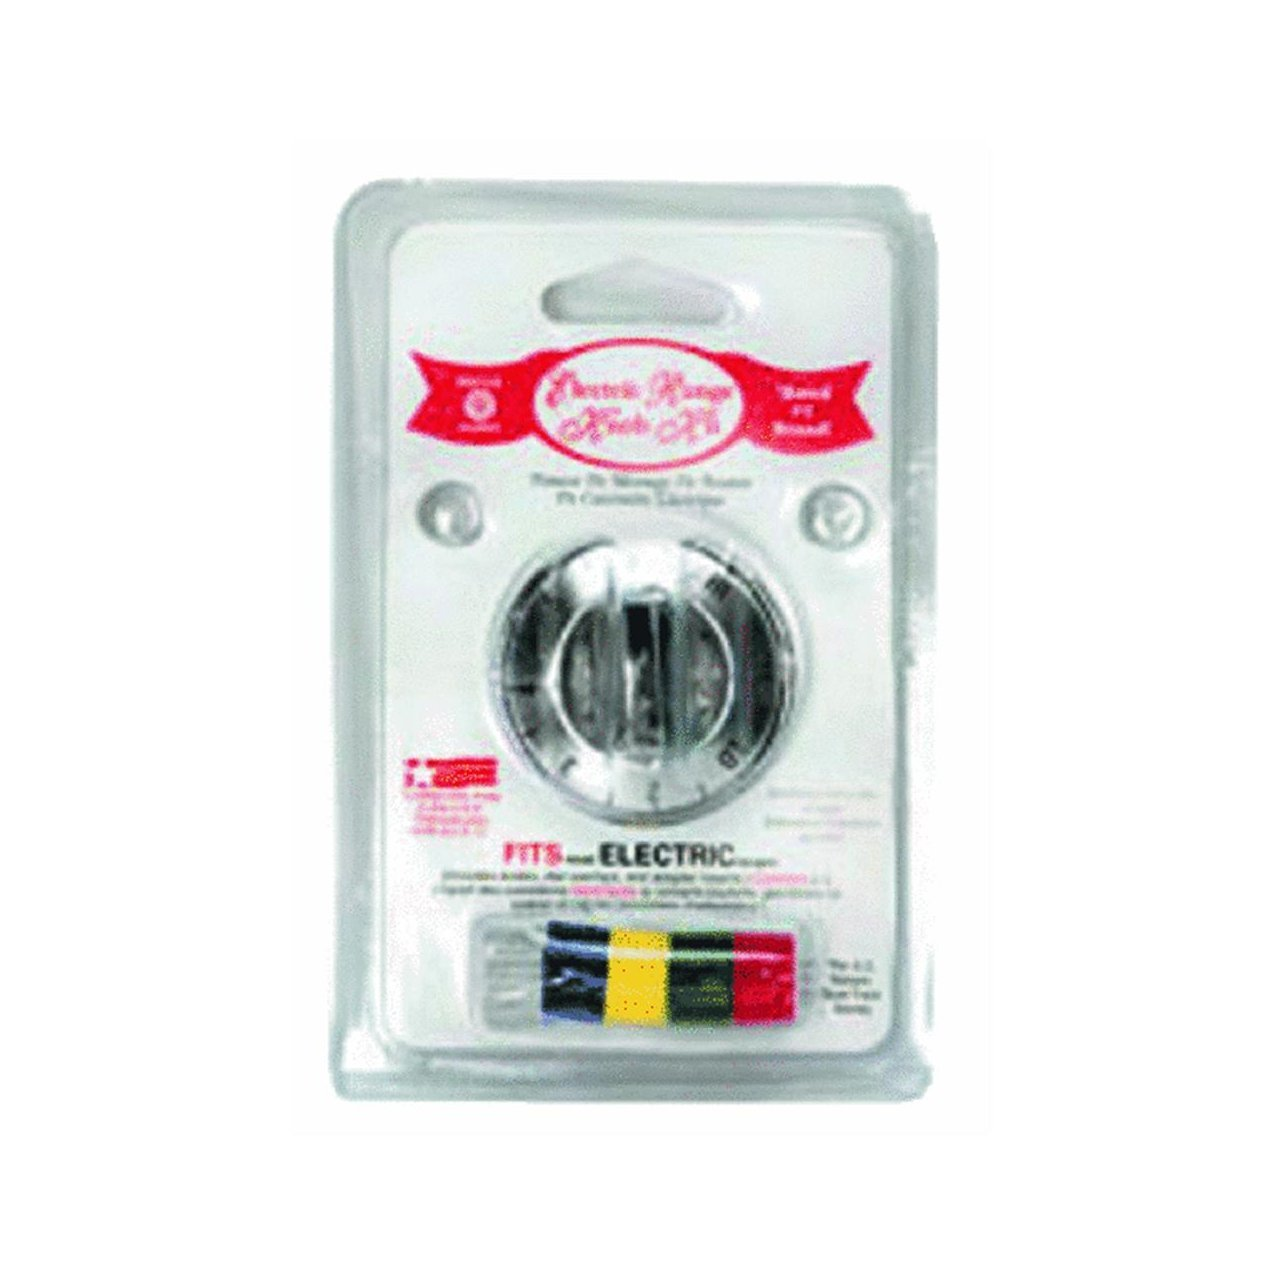 8121 Electric Range and Oven Replacement Knob Kit, Chrome, Electric range or oven